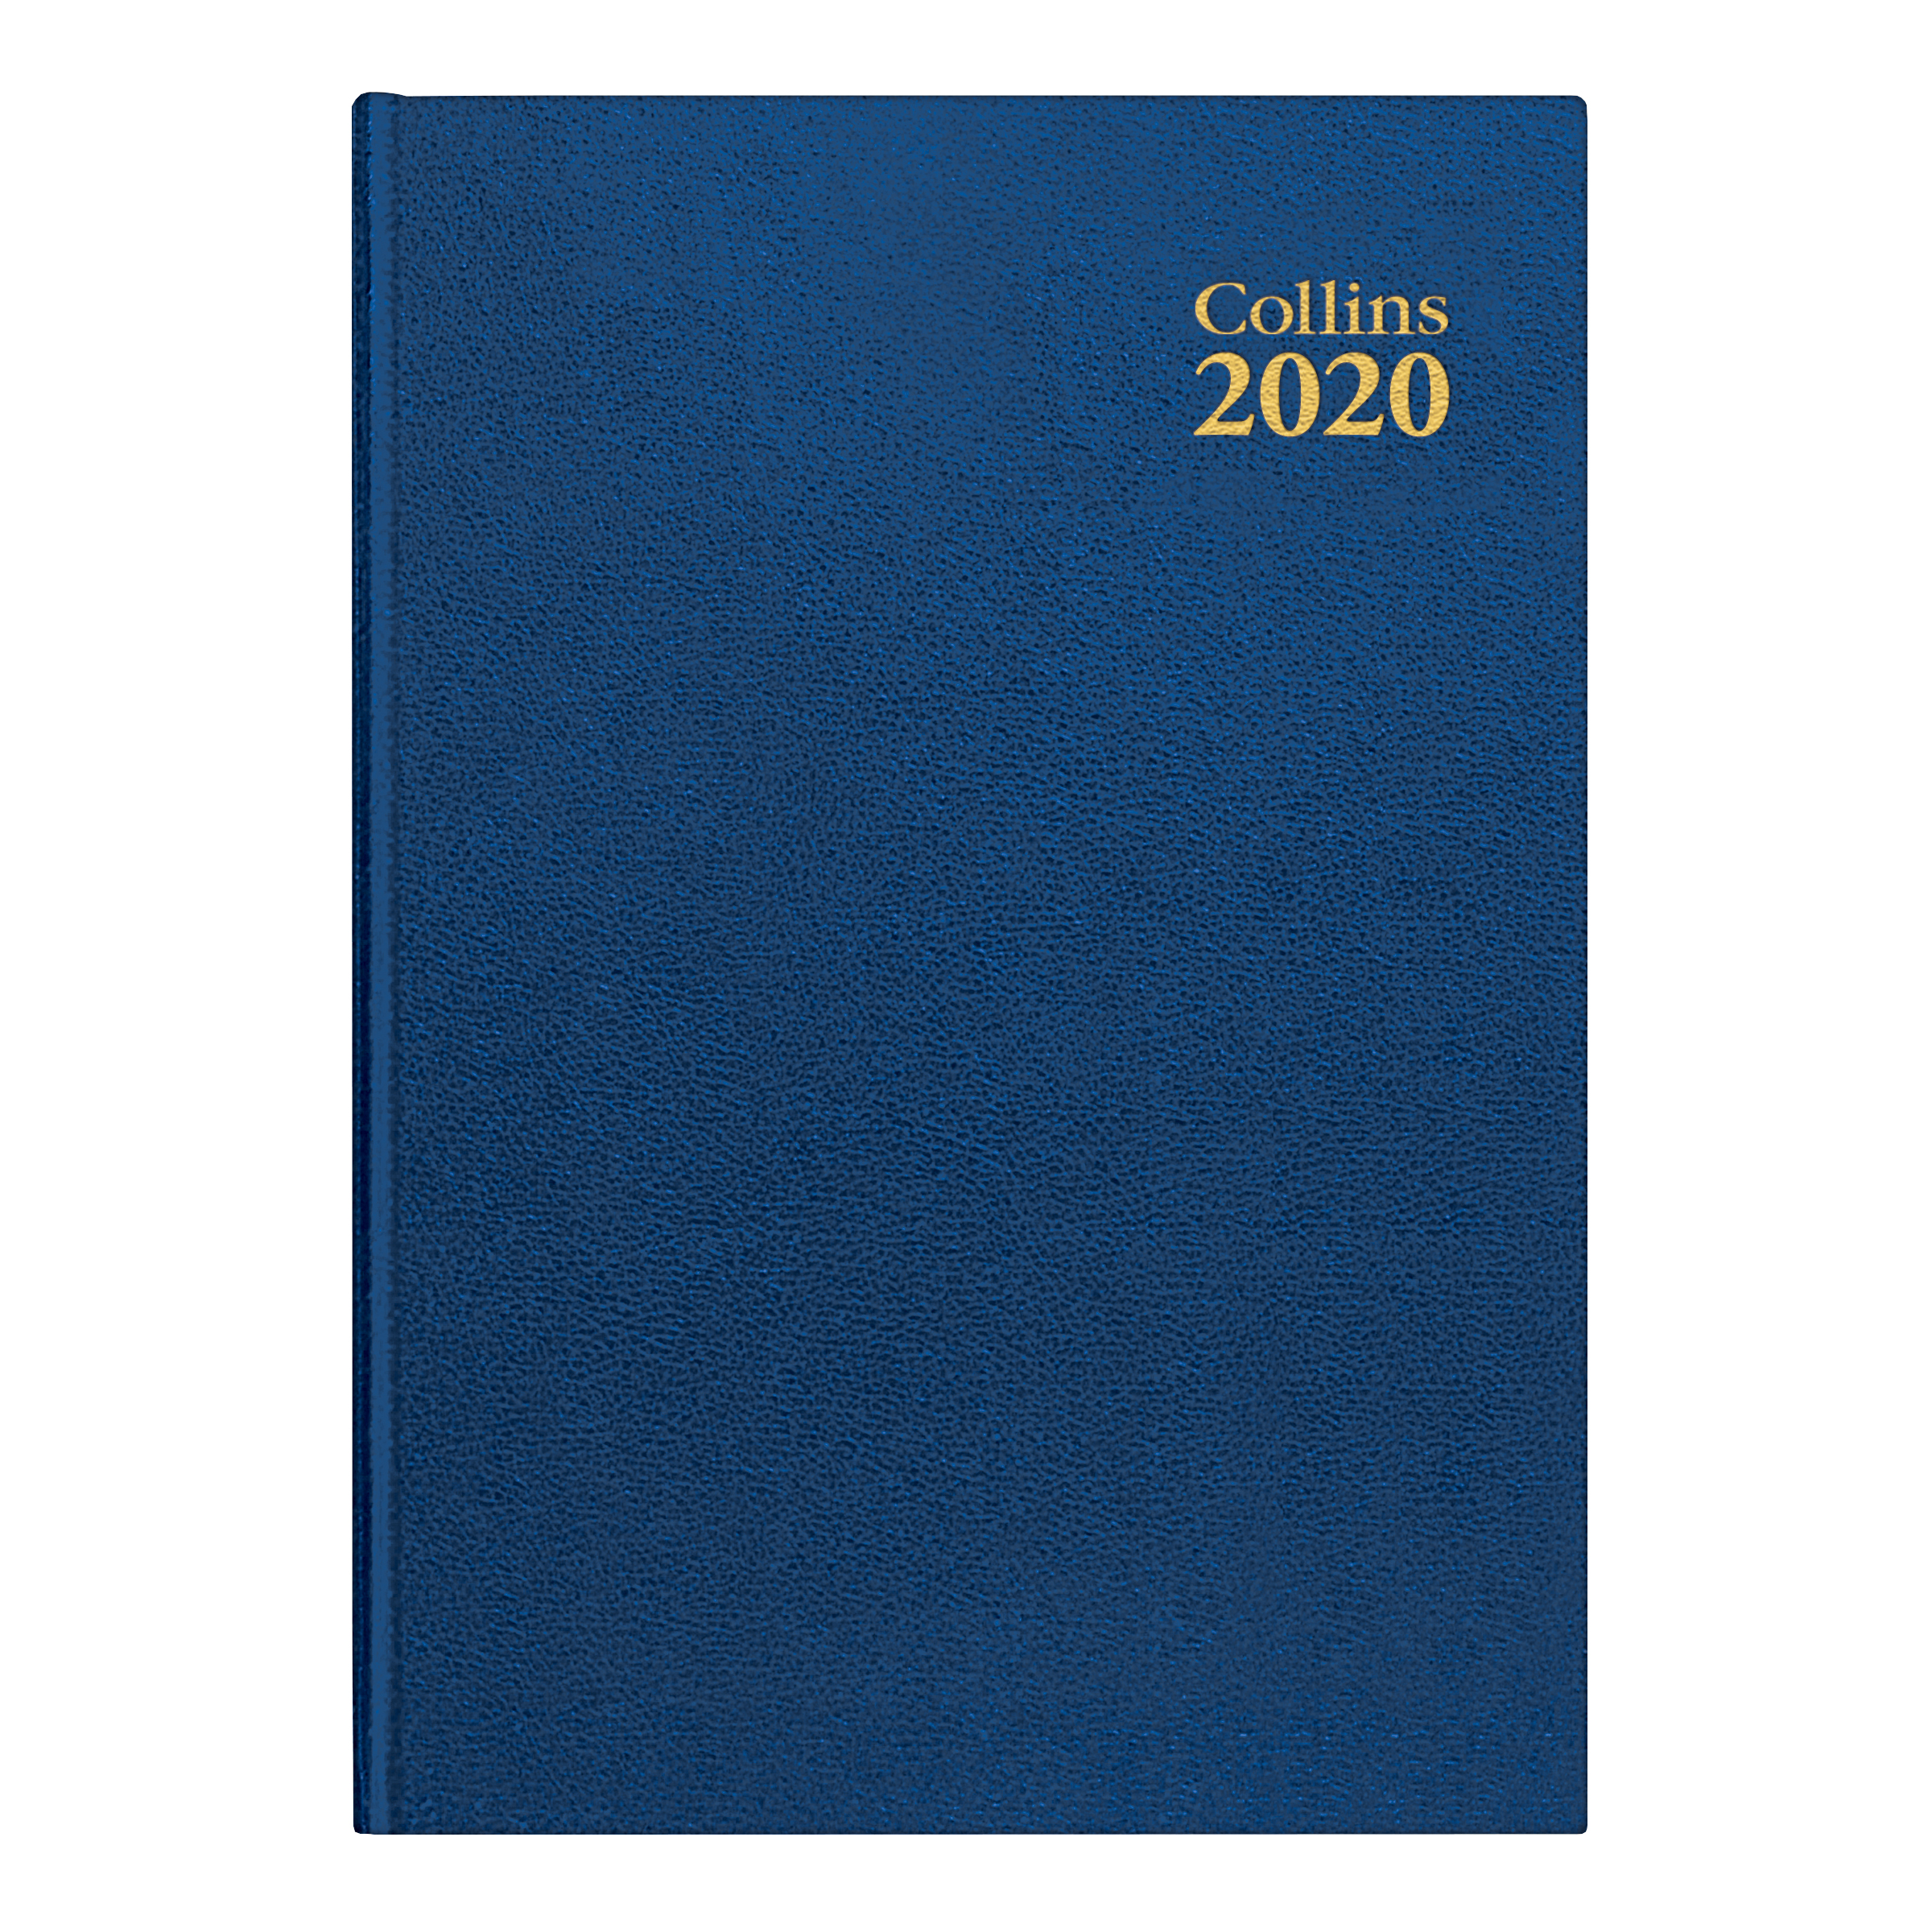 Collins 2020 Royal Desk Diary Day to Page Sewn Binding A5 210x148mm Blue Ref 52 Blu 2020